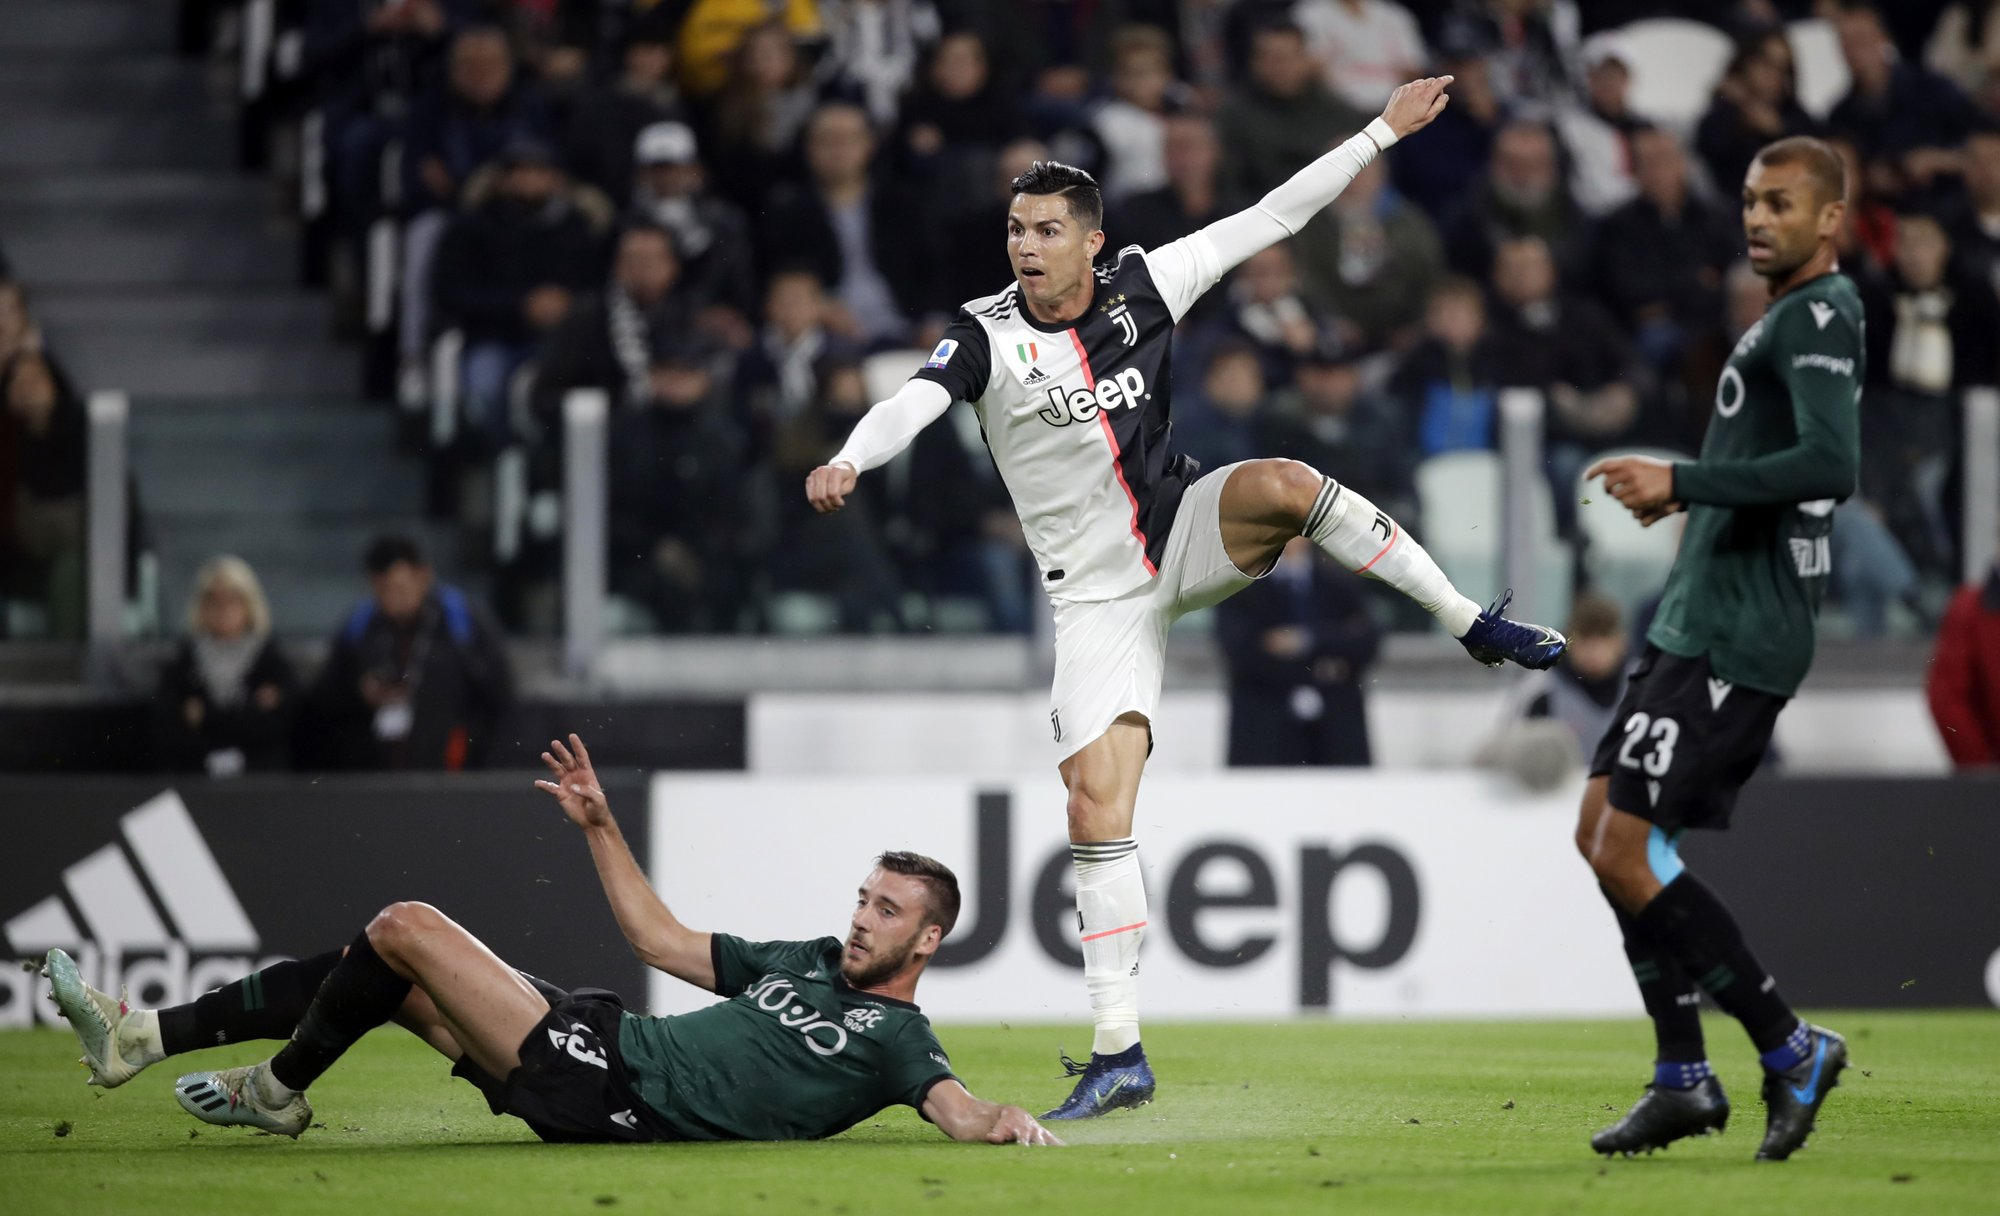 Ronaldo's step-over move fools another defender